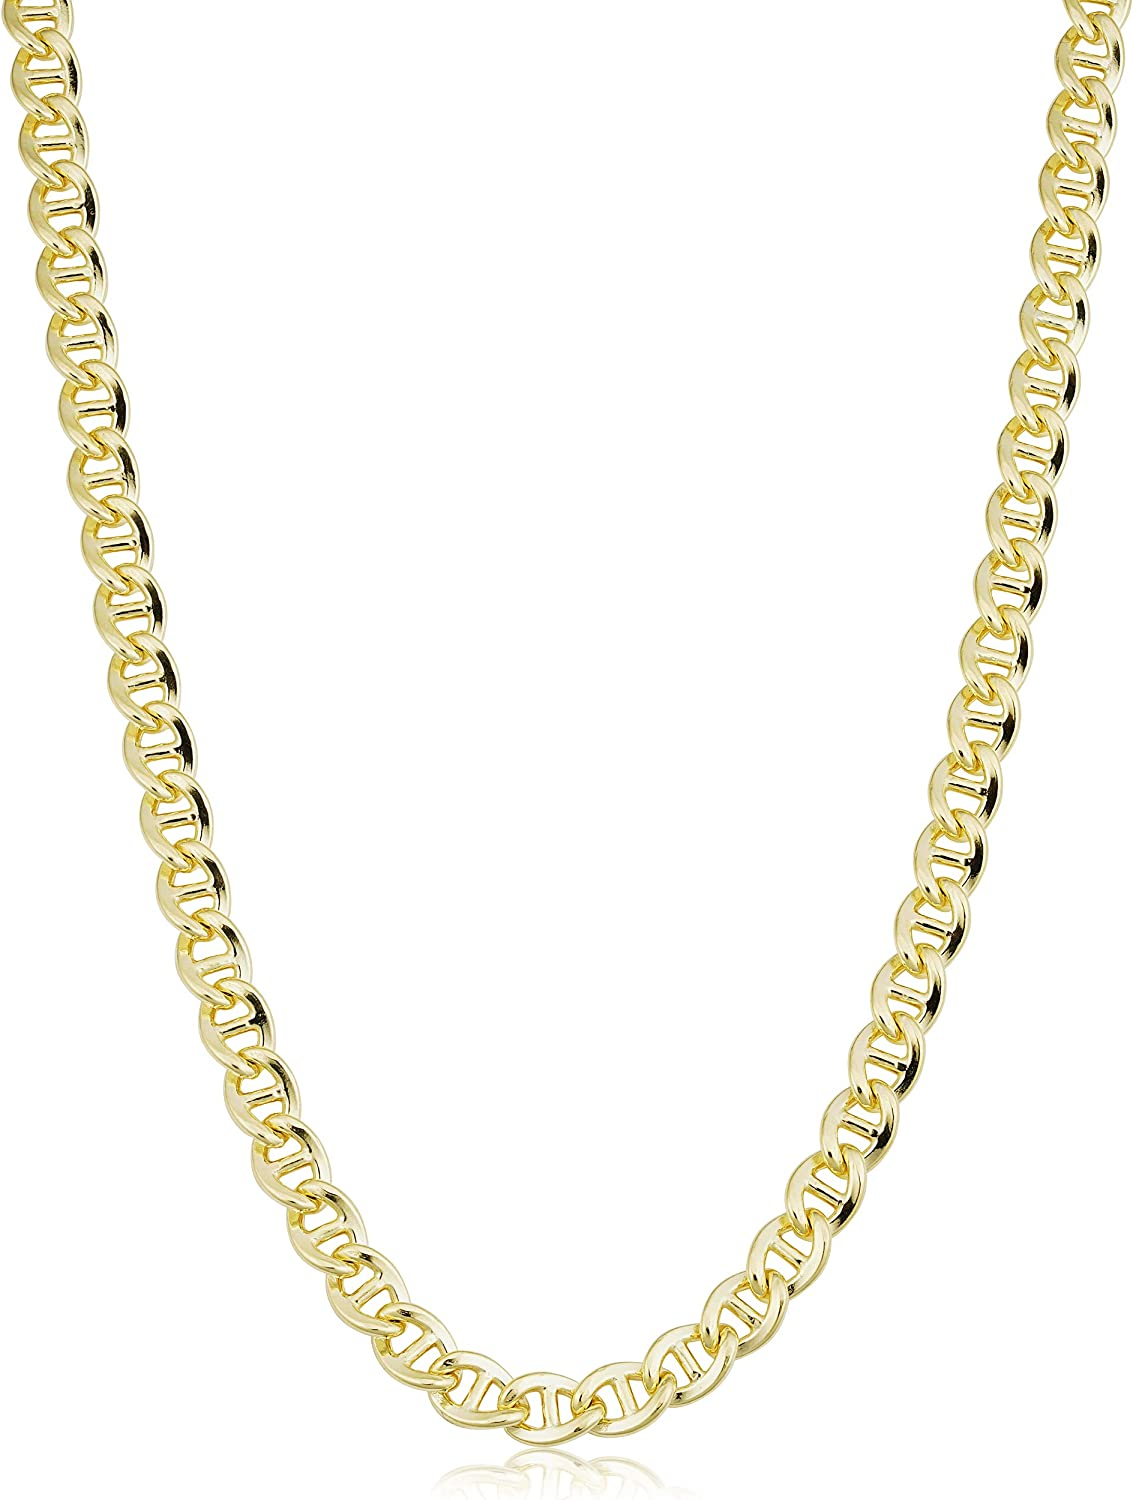 Solid 14k Yellow Gold Filled 6 mm Mariner Link Chain Necklace for Men and Women (18, 20, 22, 24 or 30 inch)